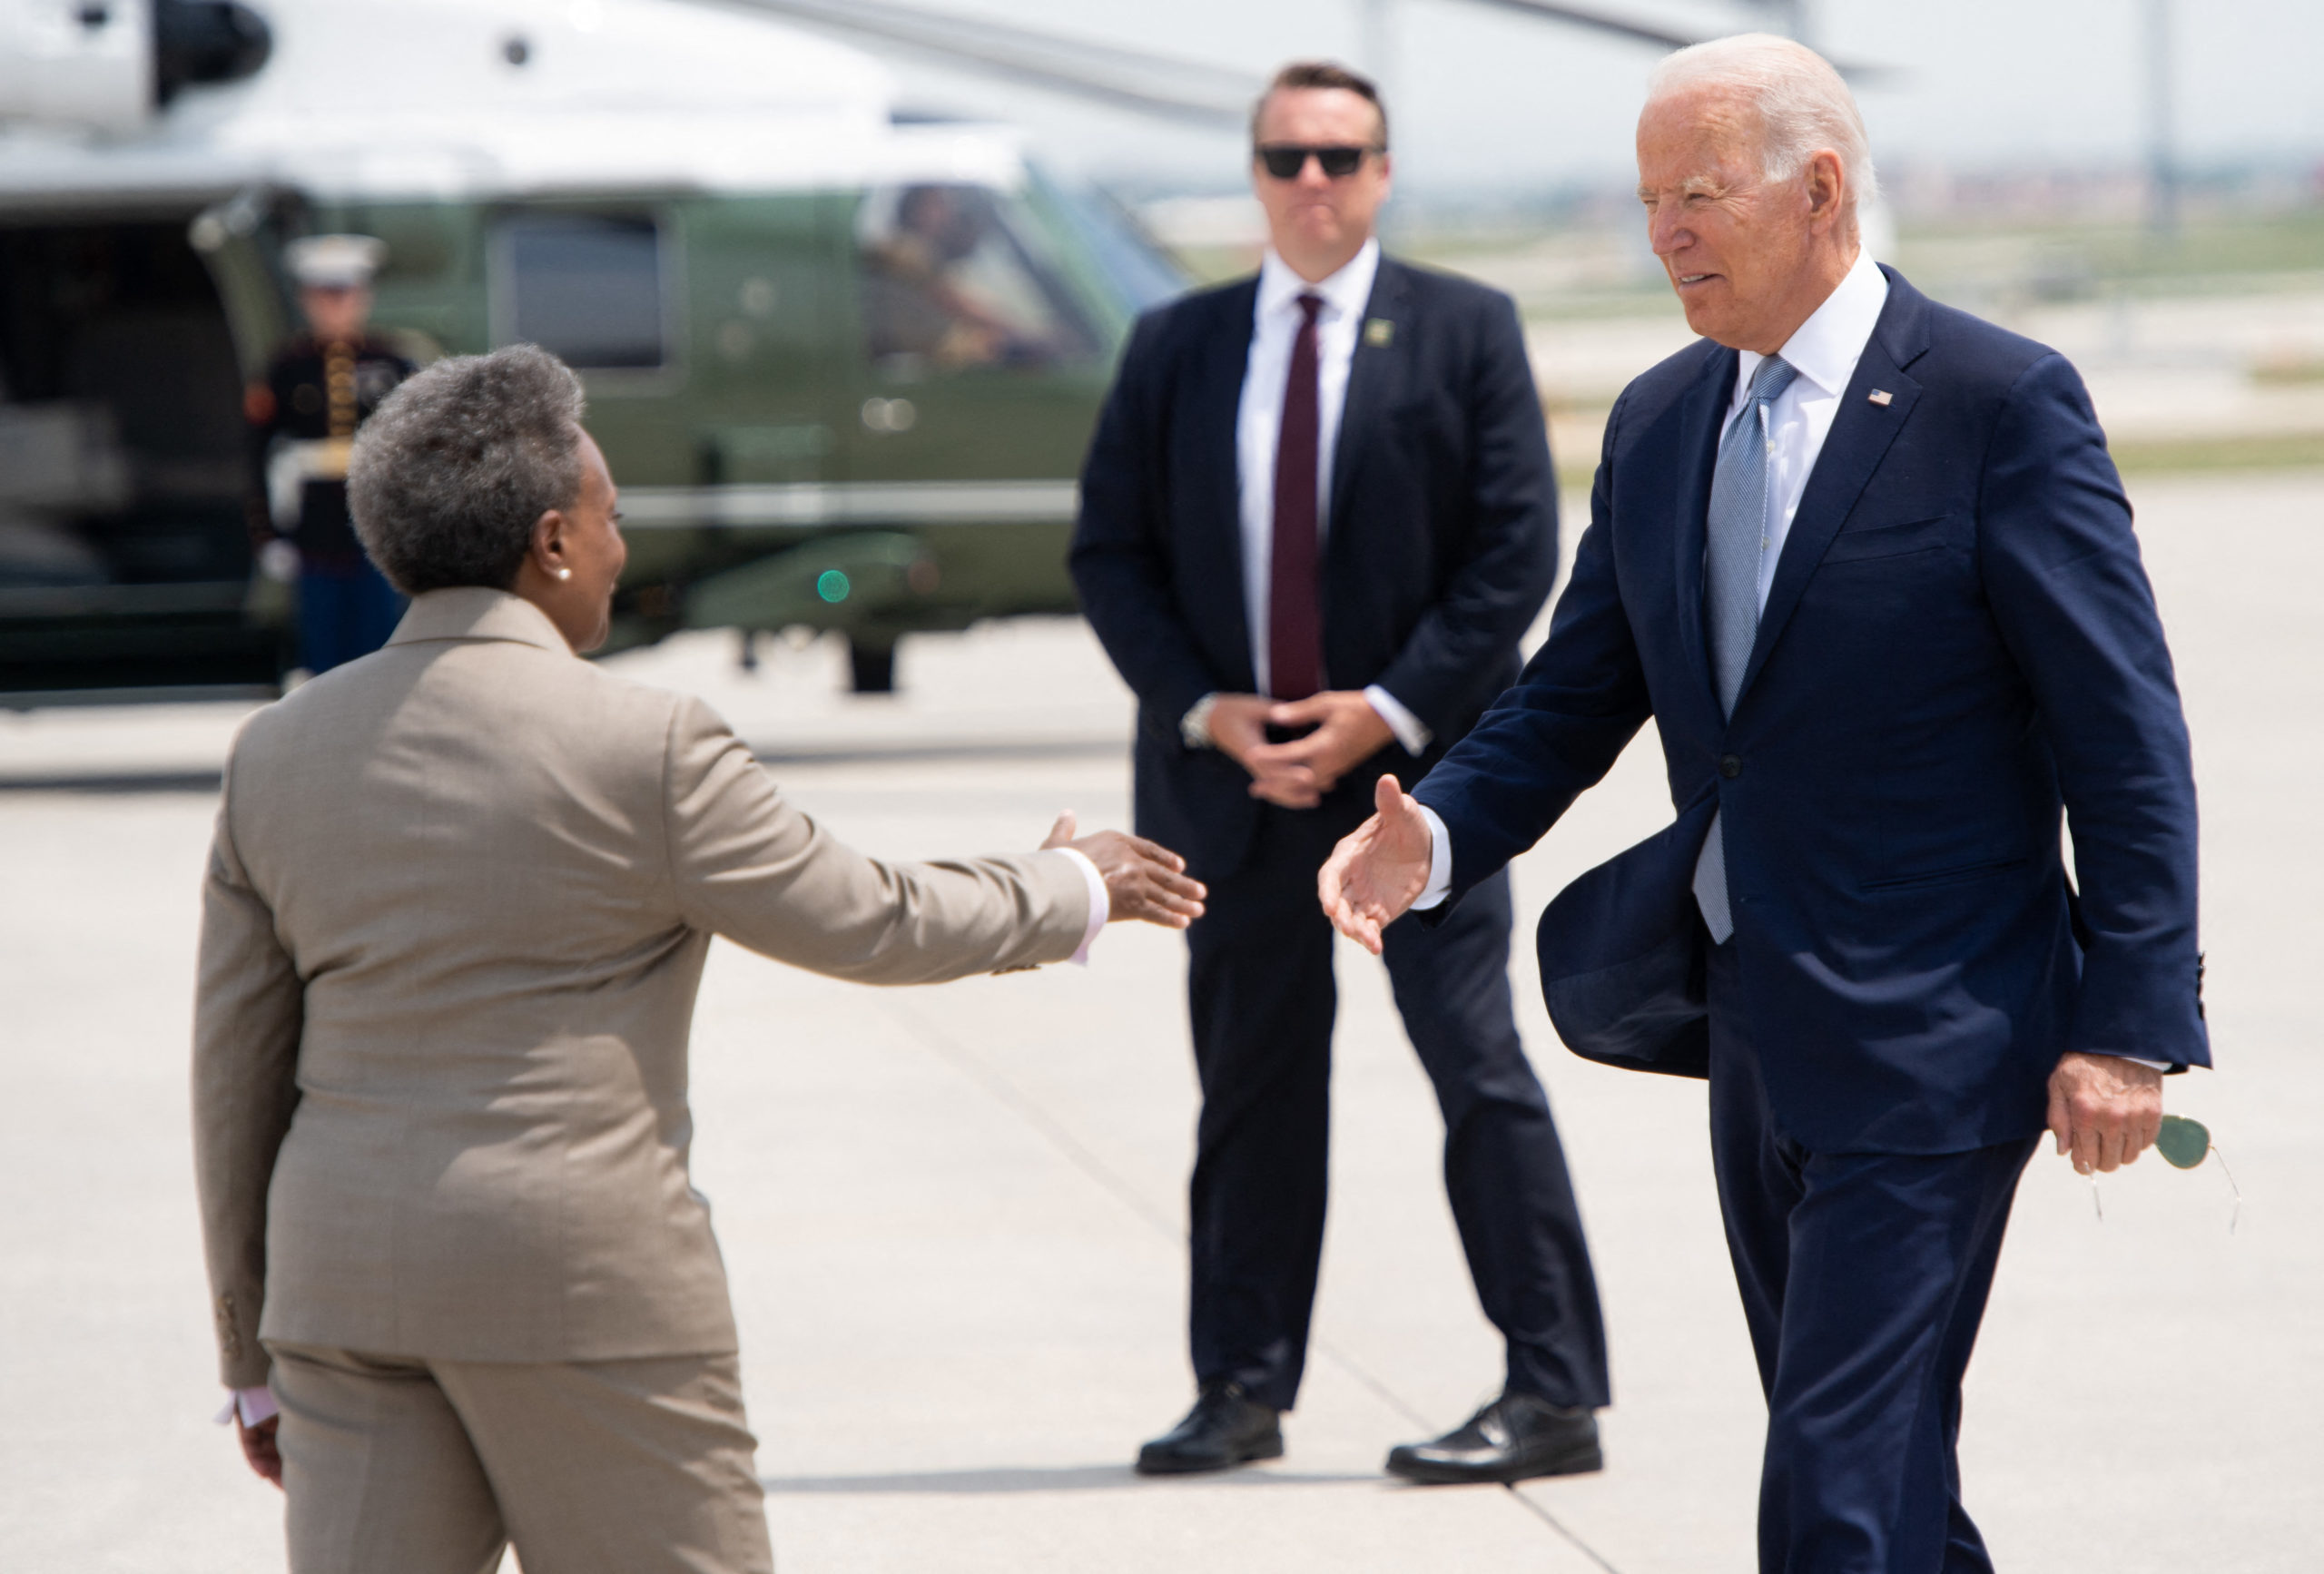 US President Joe Biden greets Chicago Mayor Lori Lightfoot as he disembarks from Air Force One upon arrival at O'Hare International Airport in Chicago, Illinois, July 7, 2021. (Photo by SAUL LOEB/AFP via Getty Images)